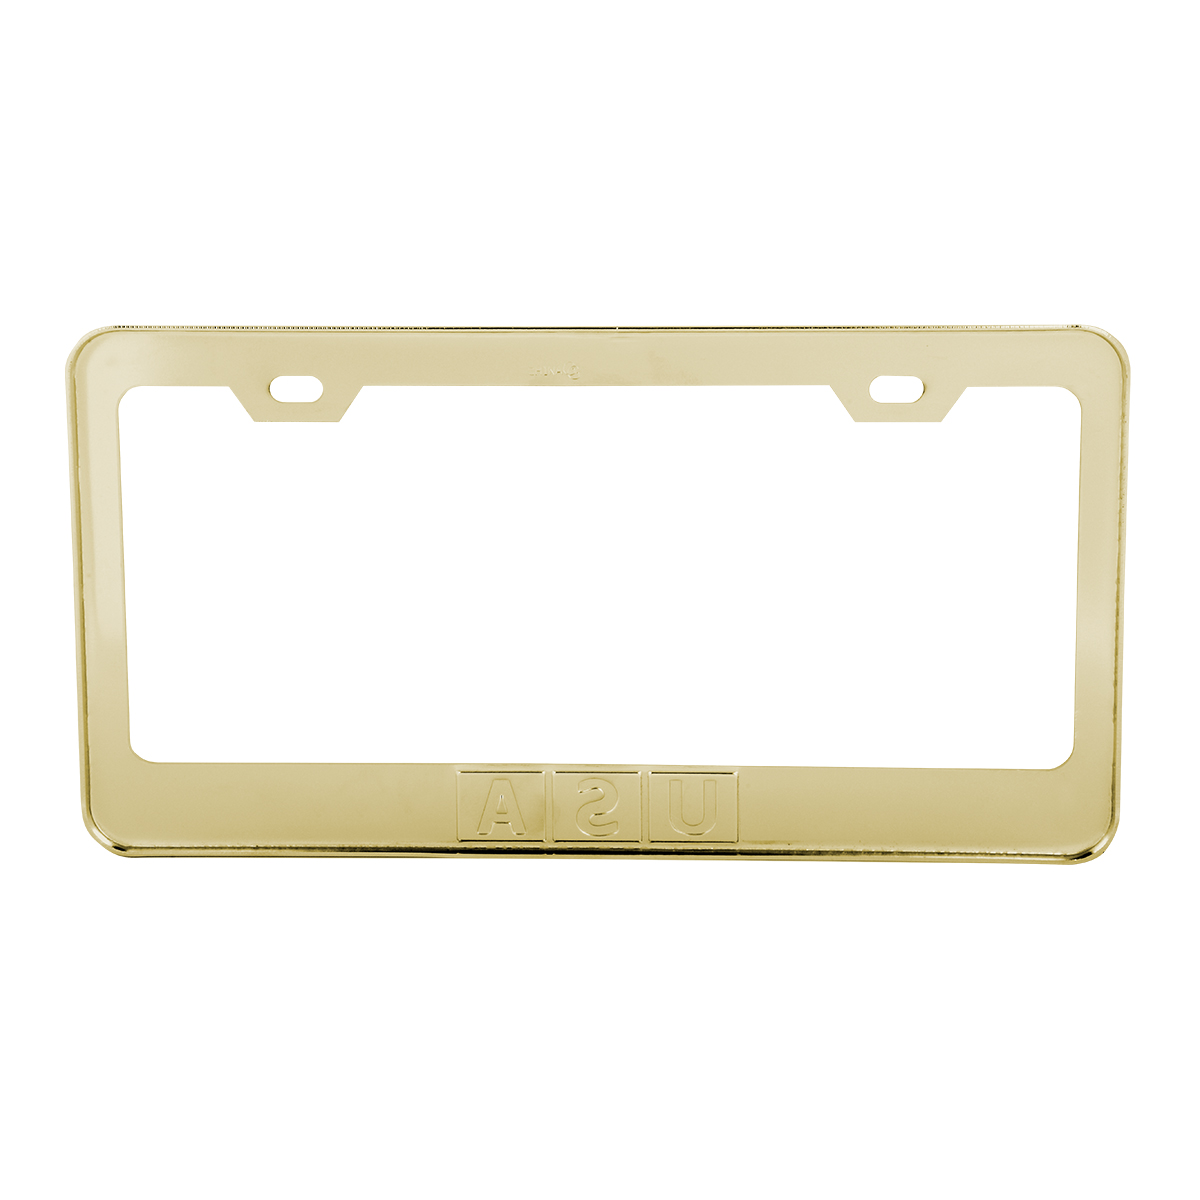 Brass-Plated (Gold Color) USA License Plate Frame - Back View